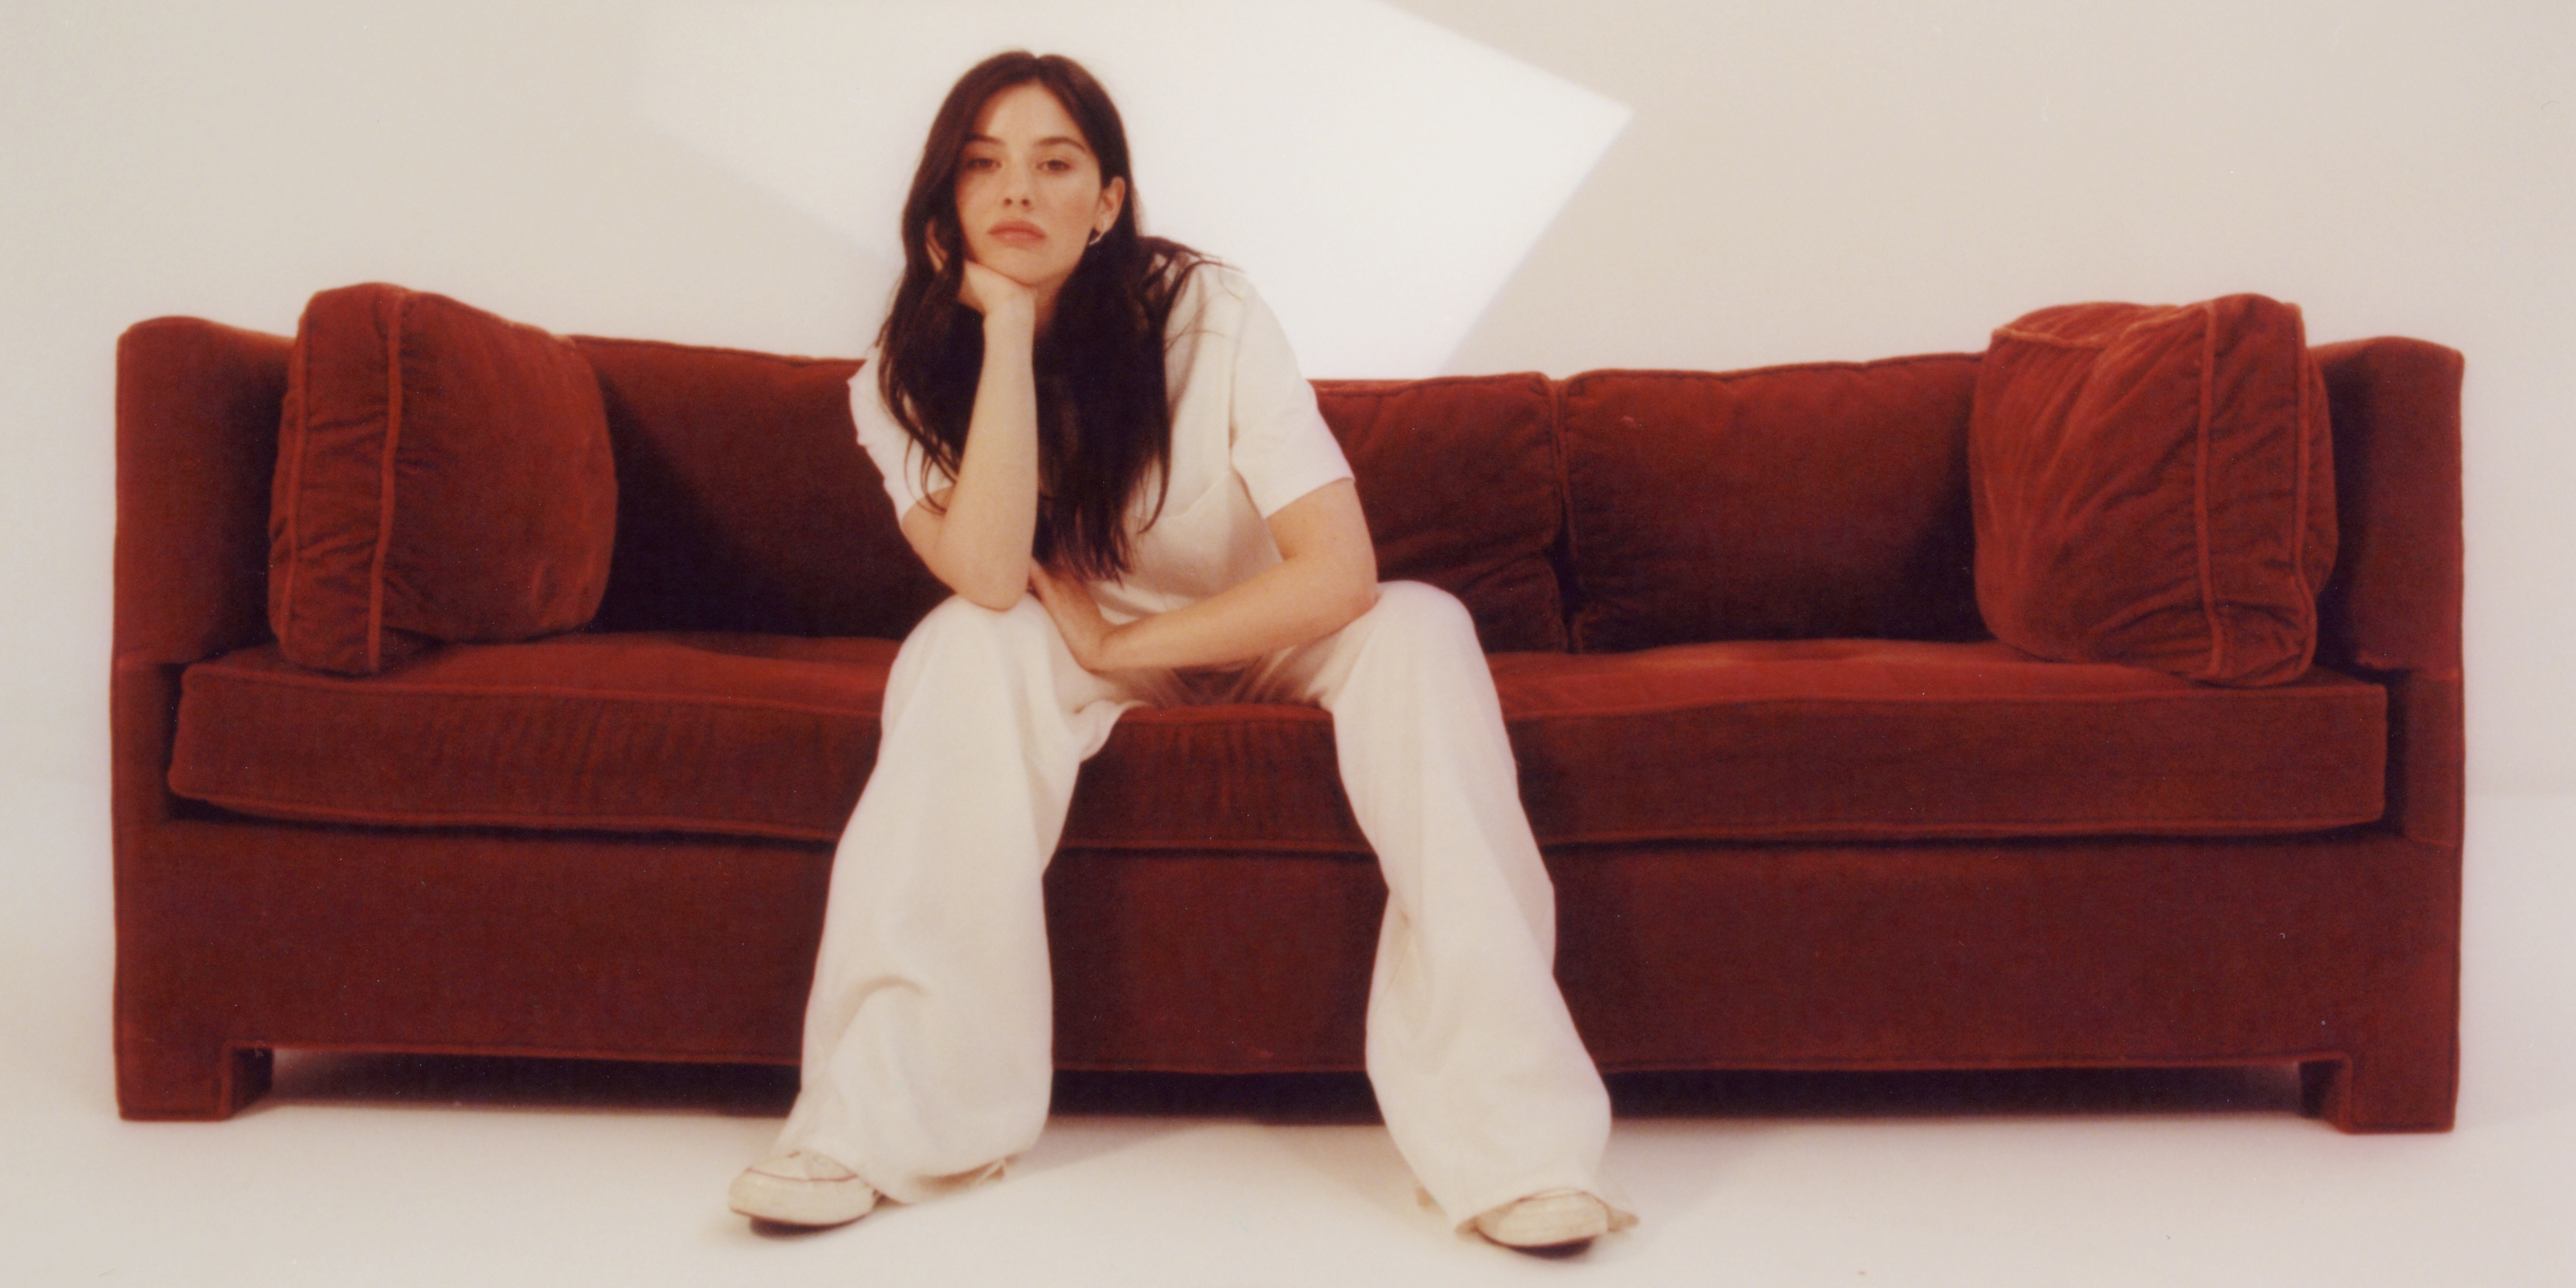 """""""I feel like I am the most vulnerable when it comes to my music."""" Gracie Abrams shares feelings on turning 21, quarantine, and songwriting"""